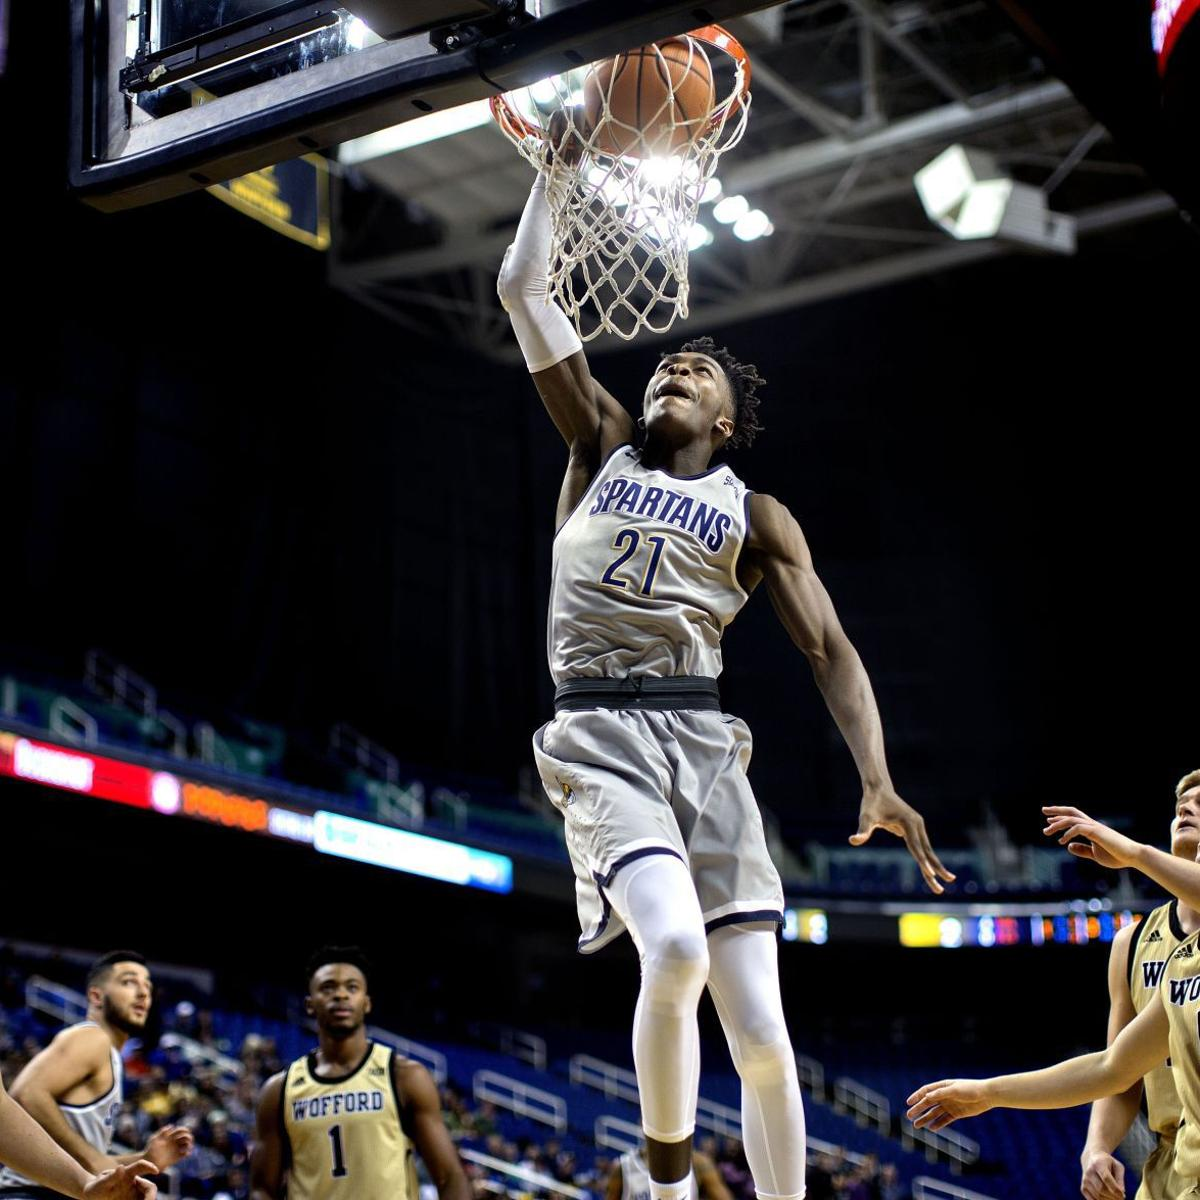 Marvin Smith's defense keys UNCG comeback win over Wofford